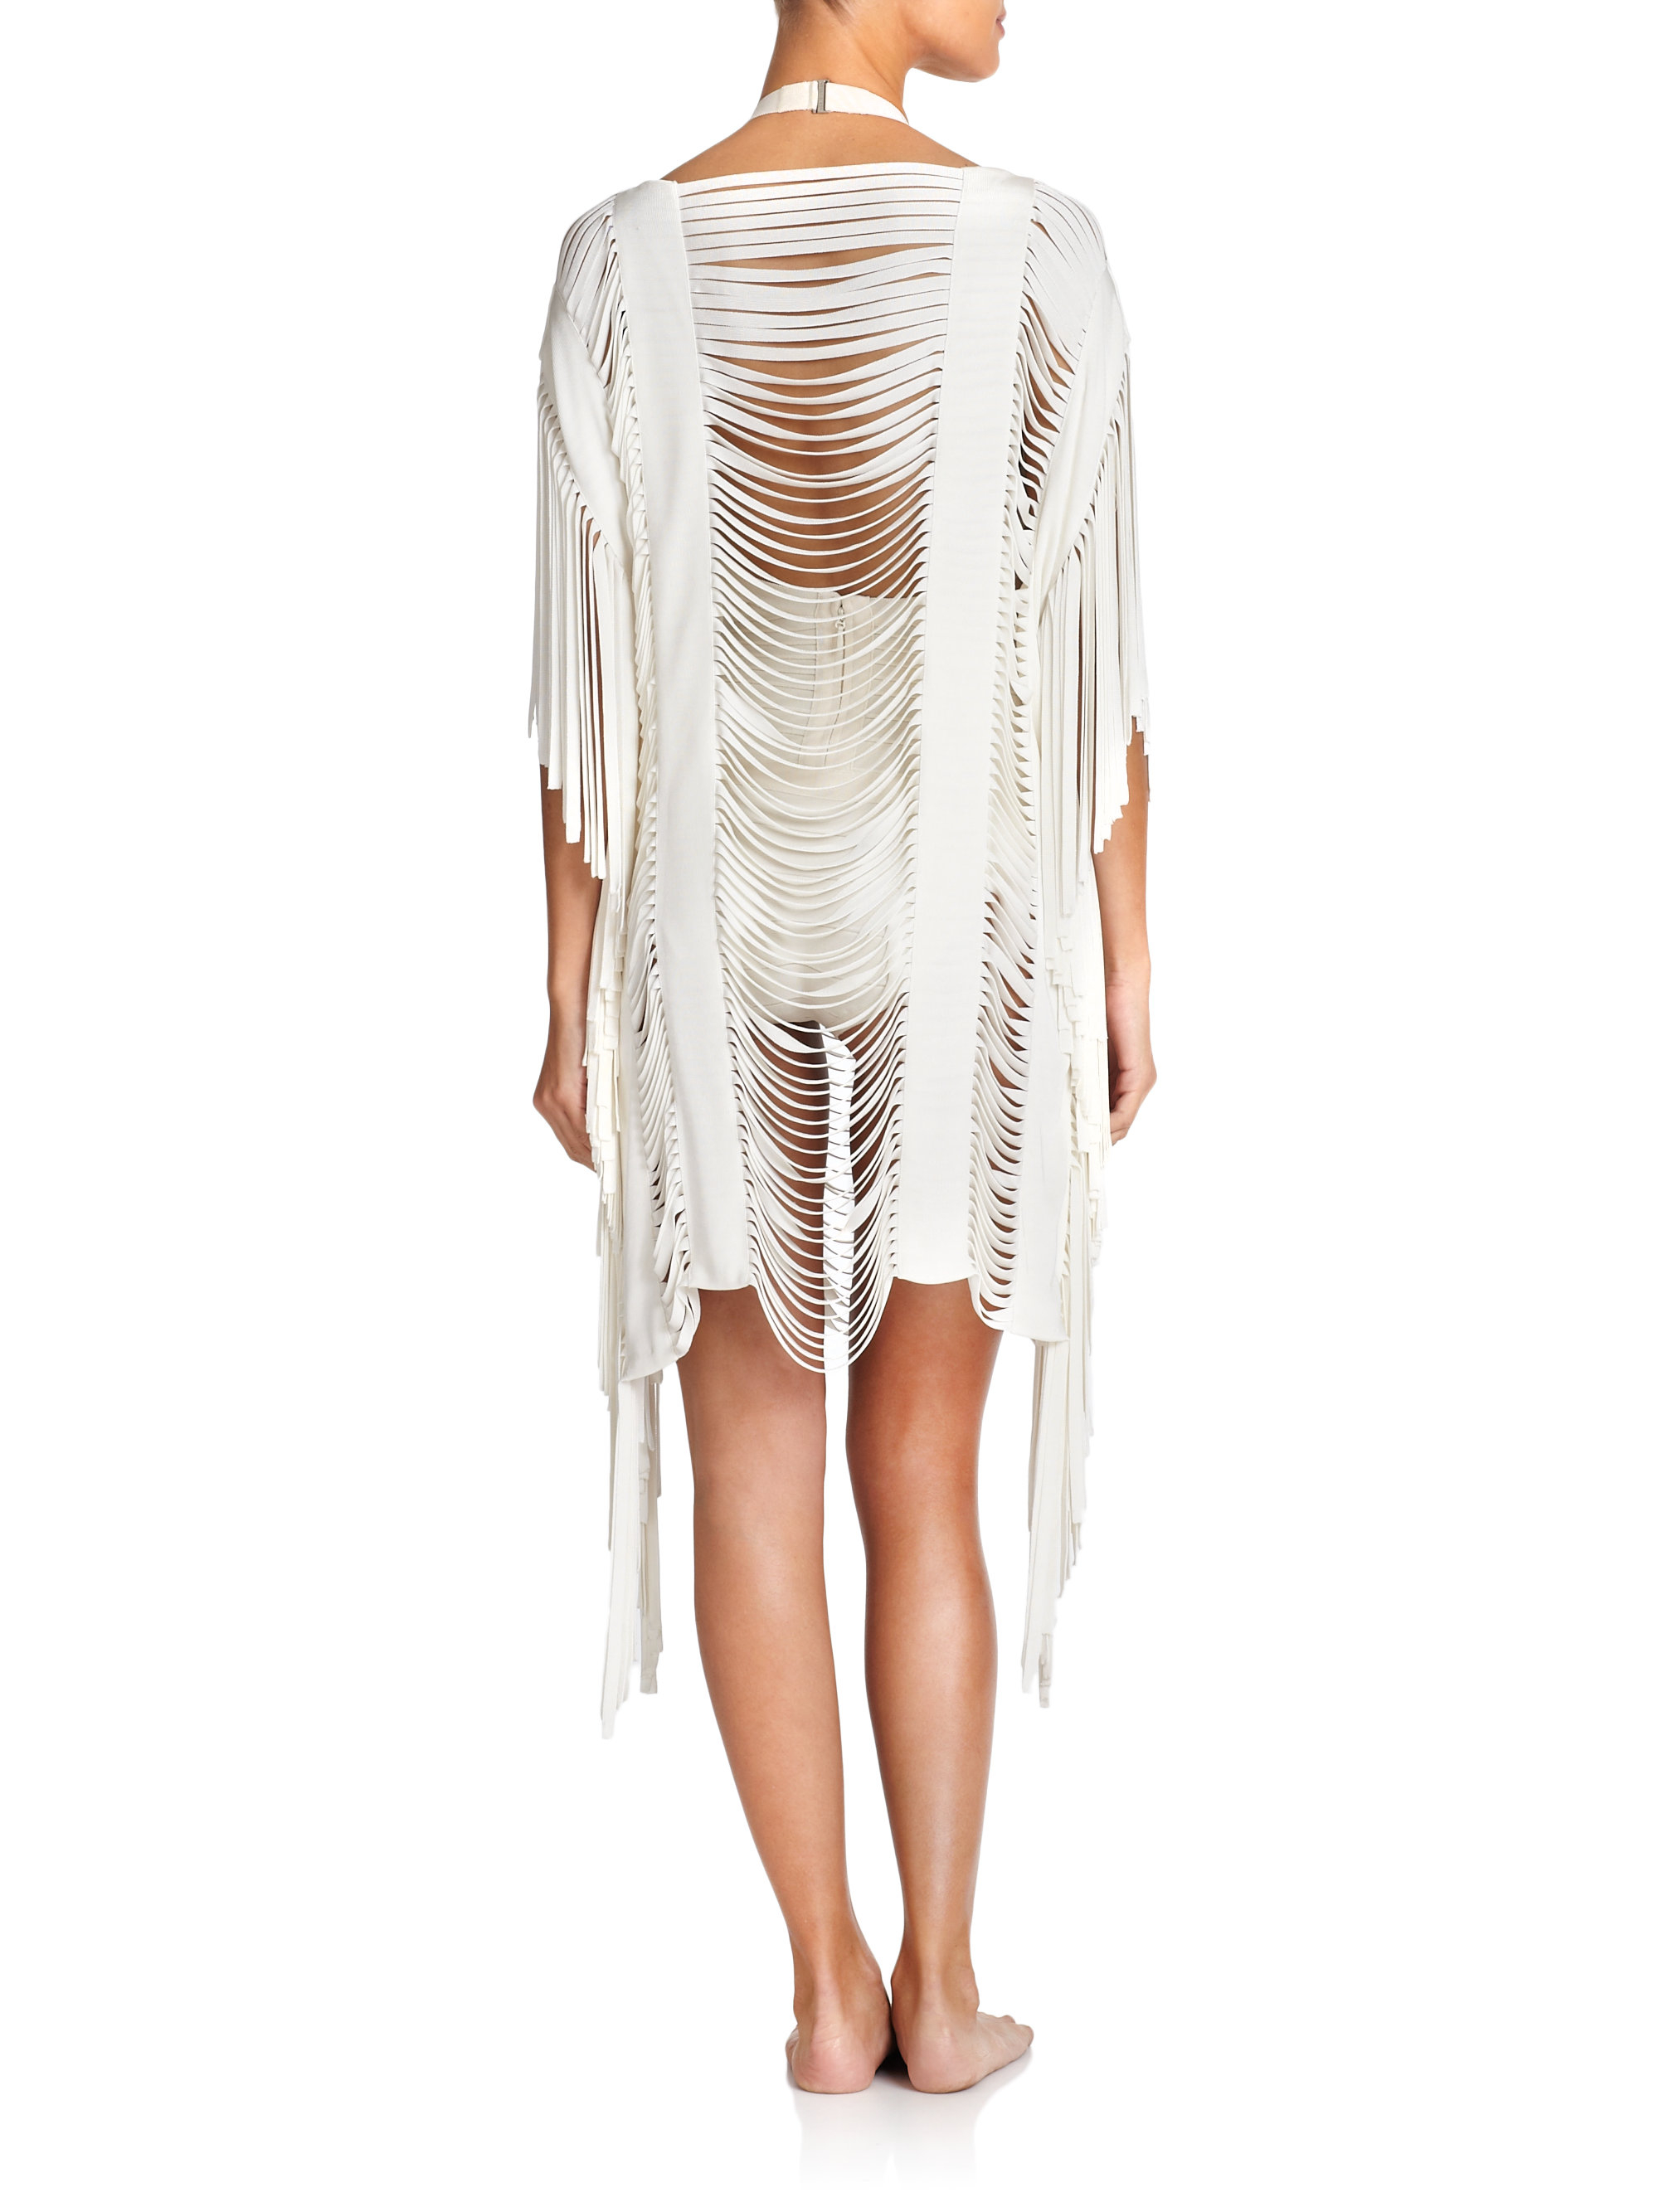 961a27913fb8d Hervé Léger Fringe Cover-Up in White - Lyst